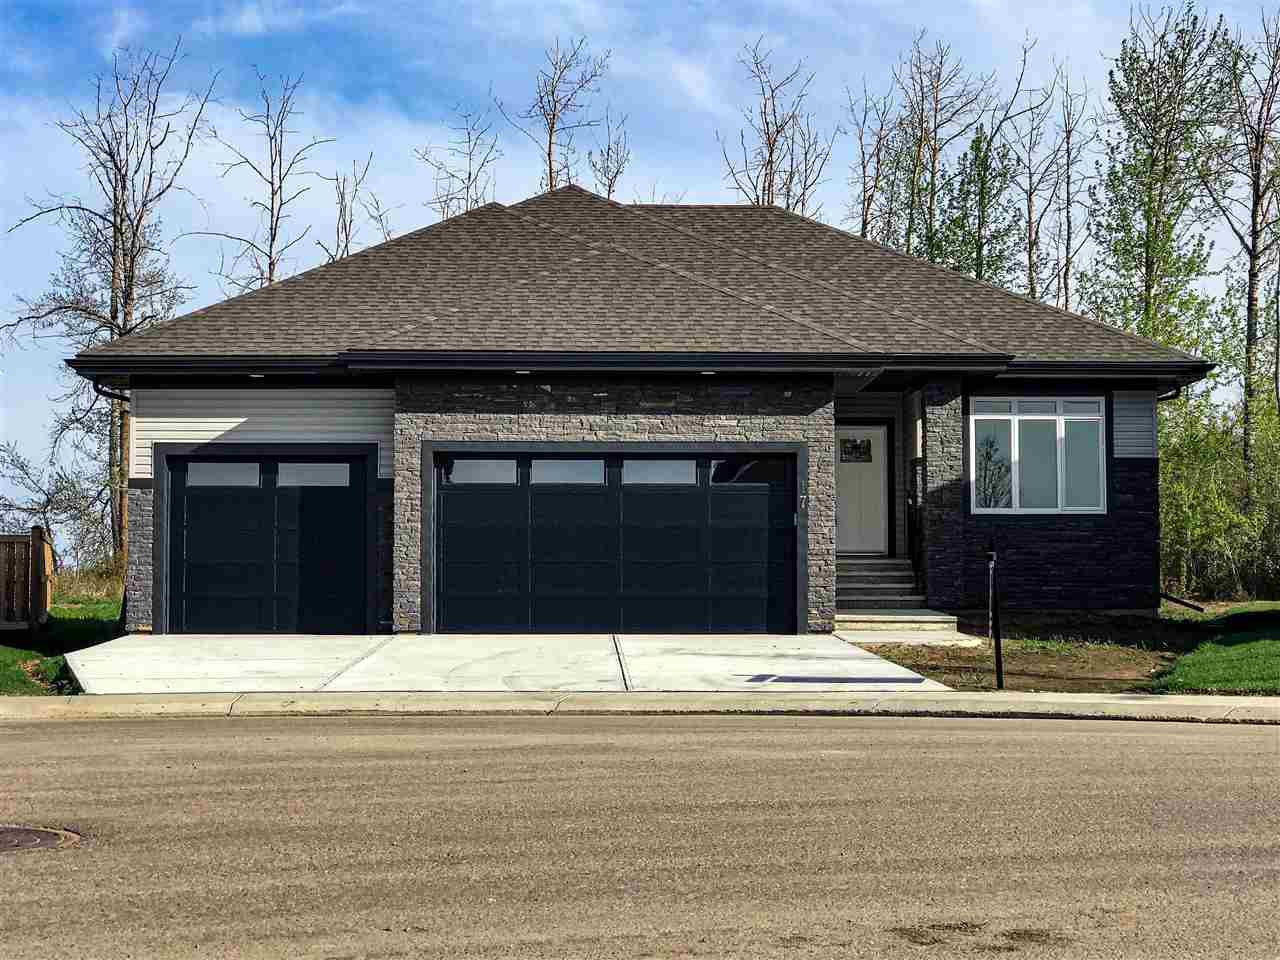 Main Photo: 17 DILLWORTH Crescent: Spruce Grove House for sale : MLS®# E4176278